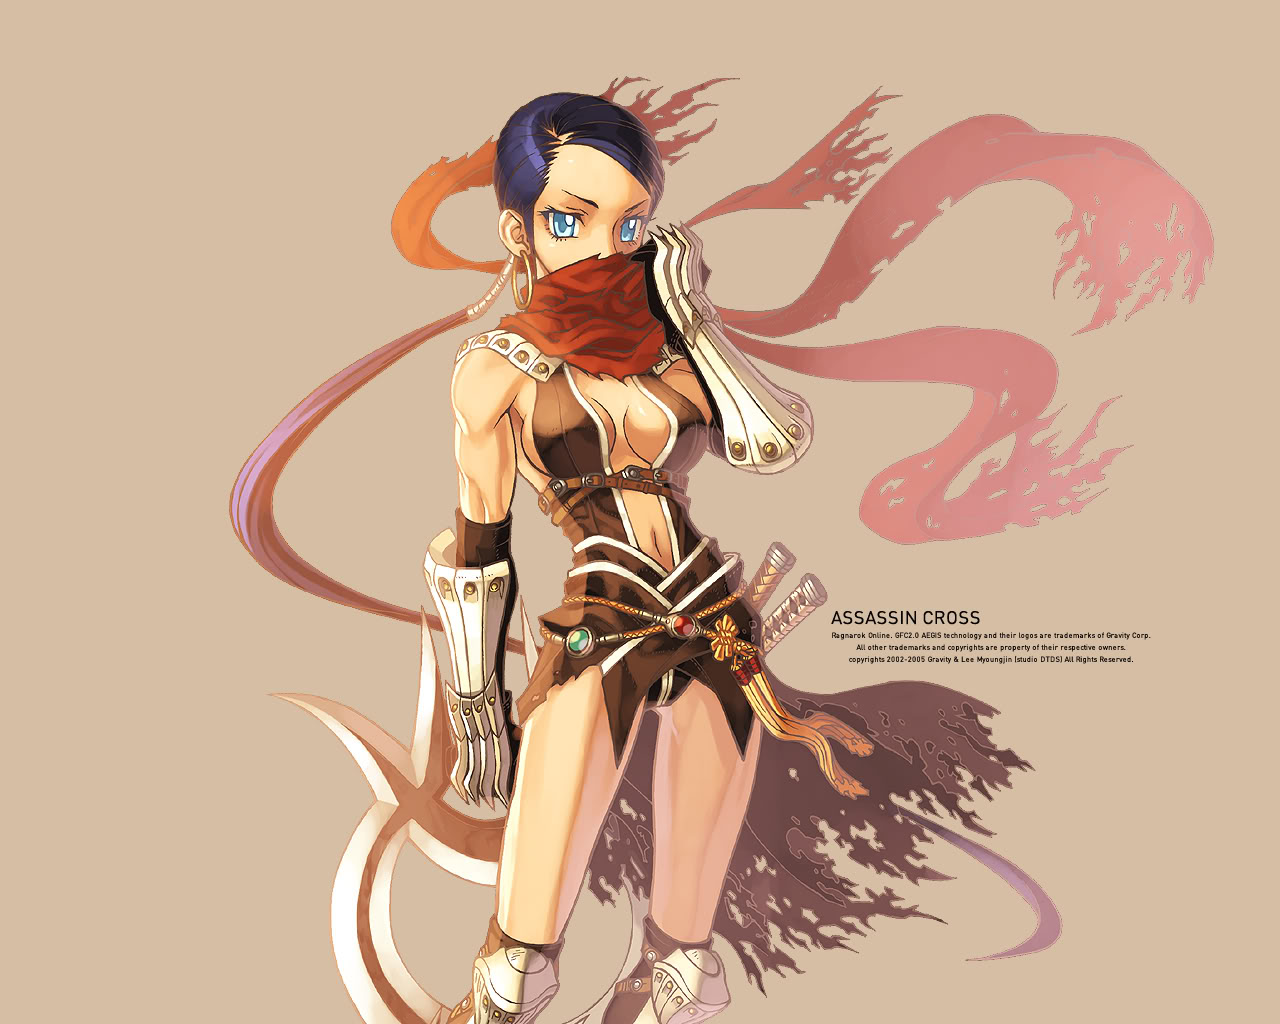 Anime Girl Assassin 9 Widescreen Wallpaper